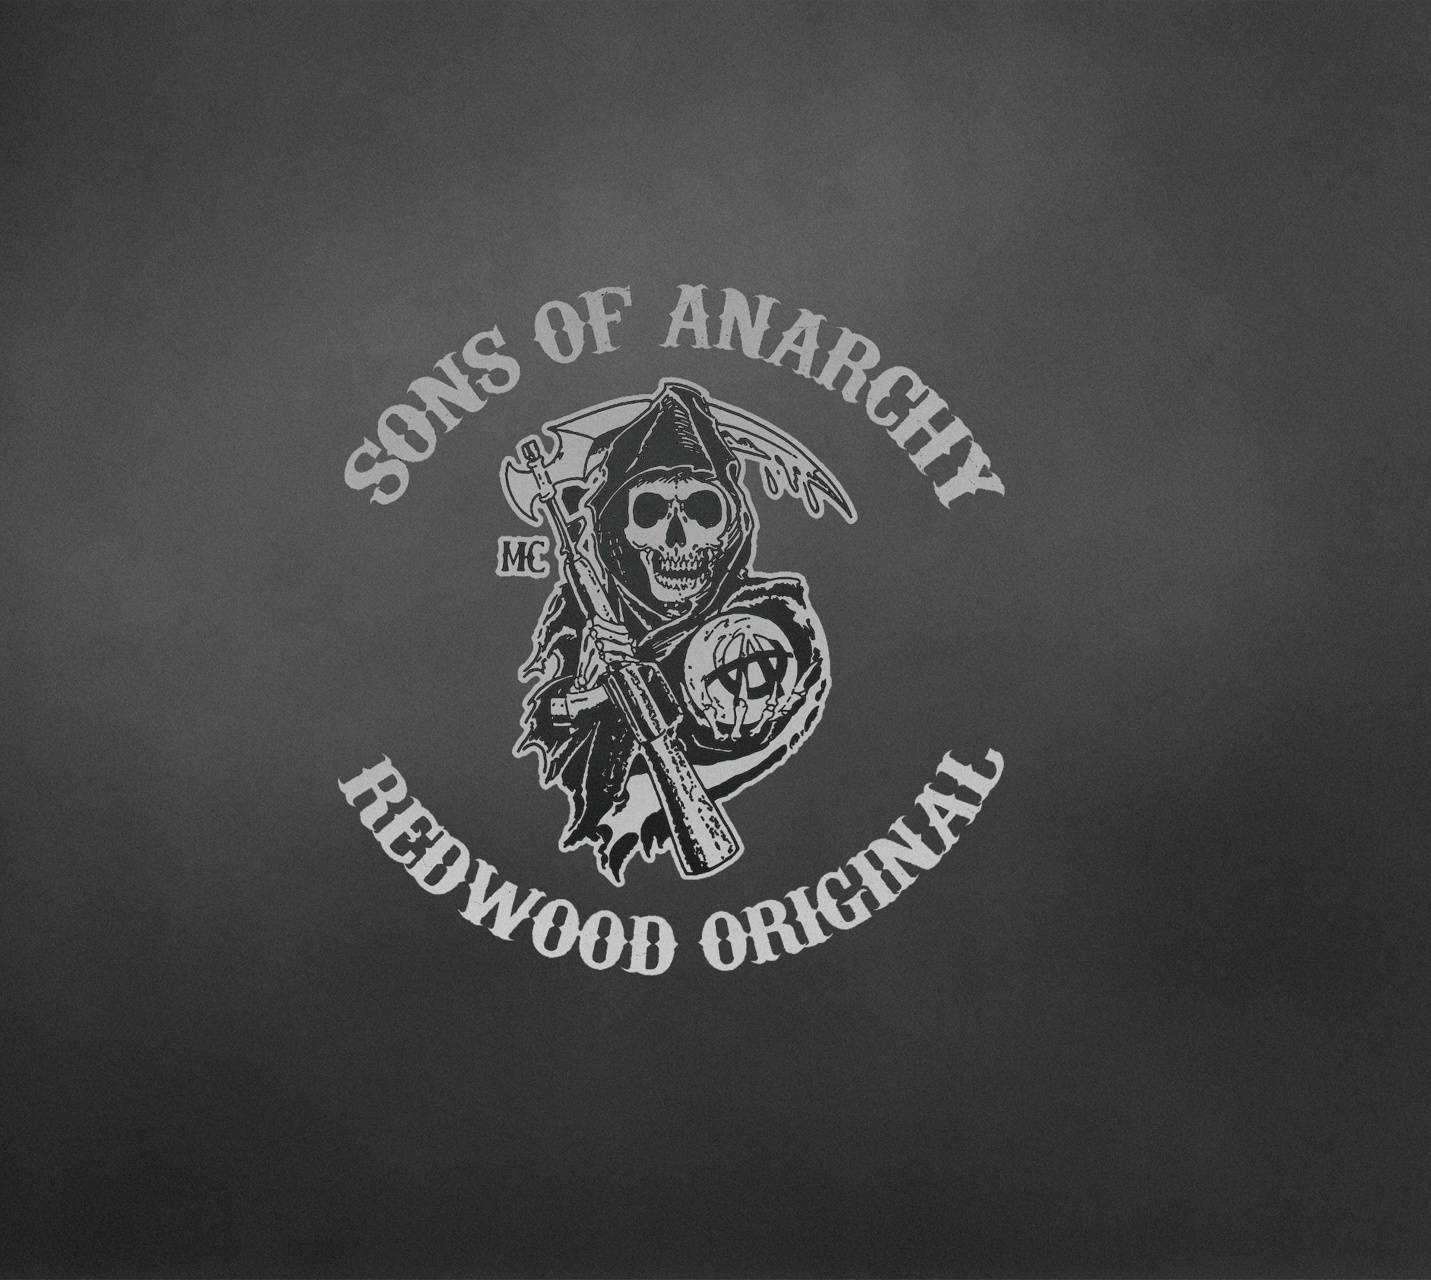 Sons Of Anarchy Wallpaper By Kalanawarwick C0 Free On Zedge